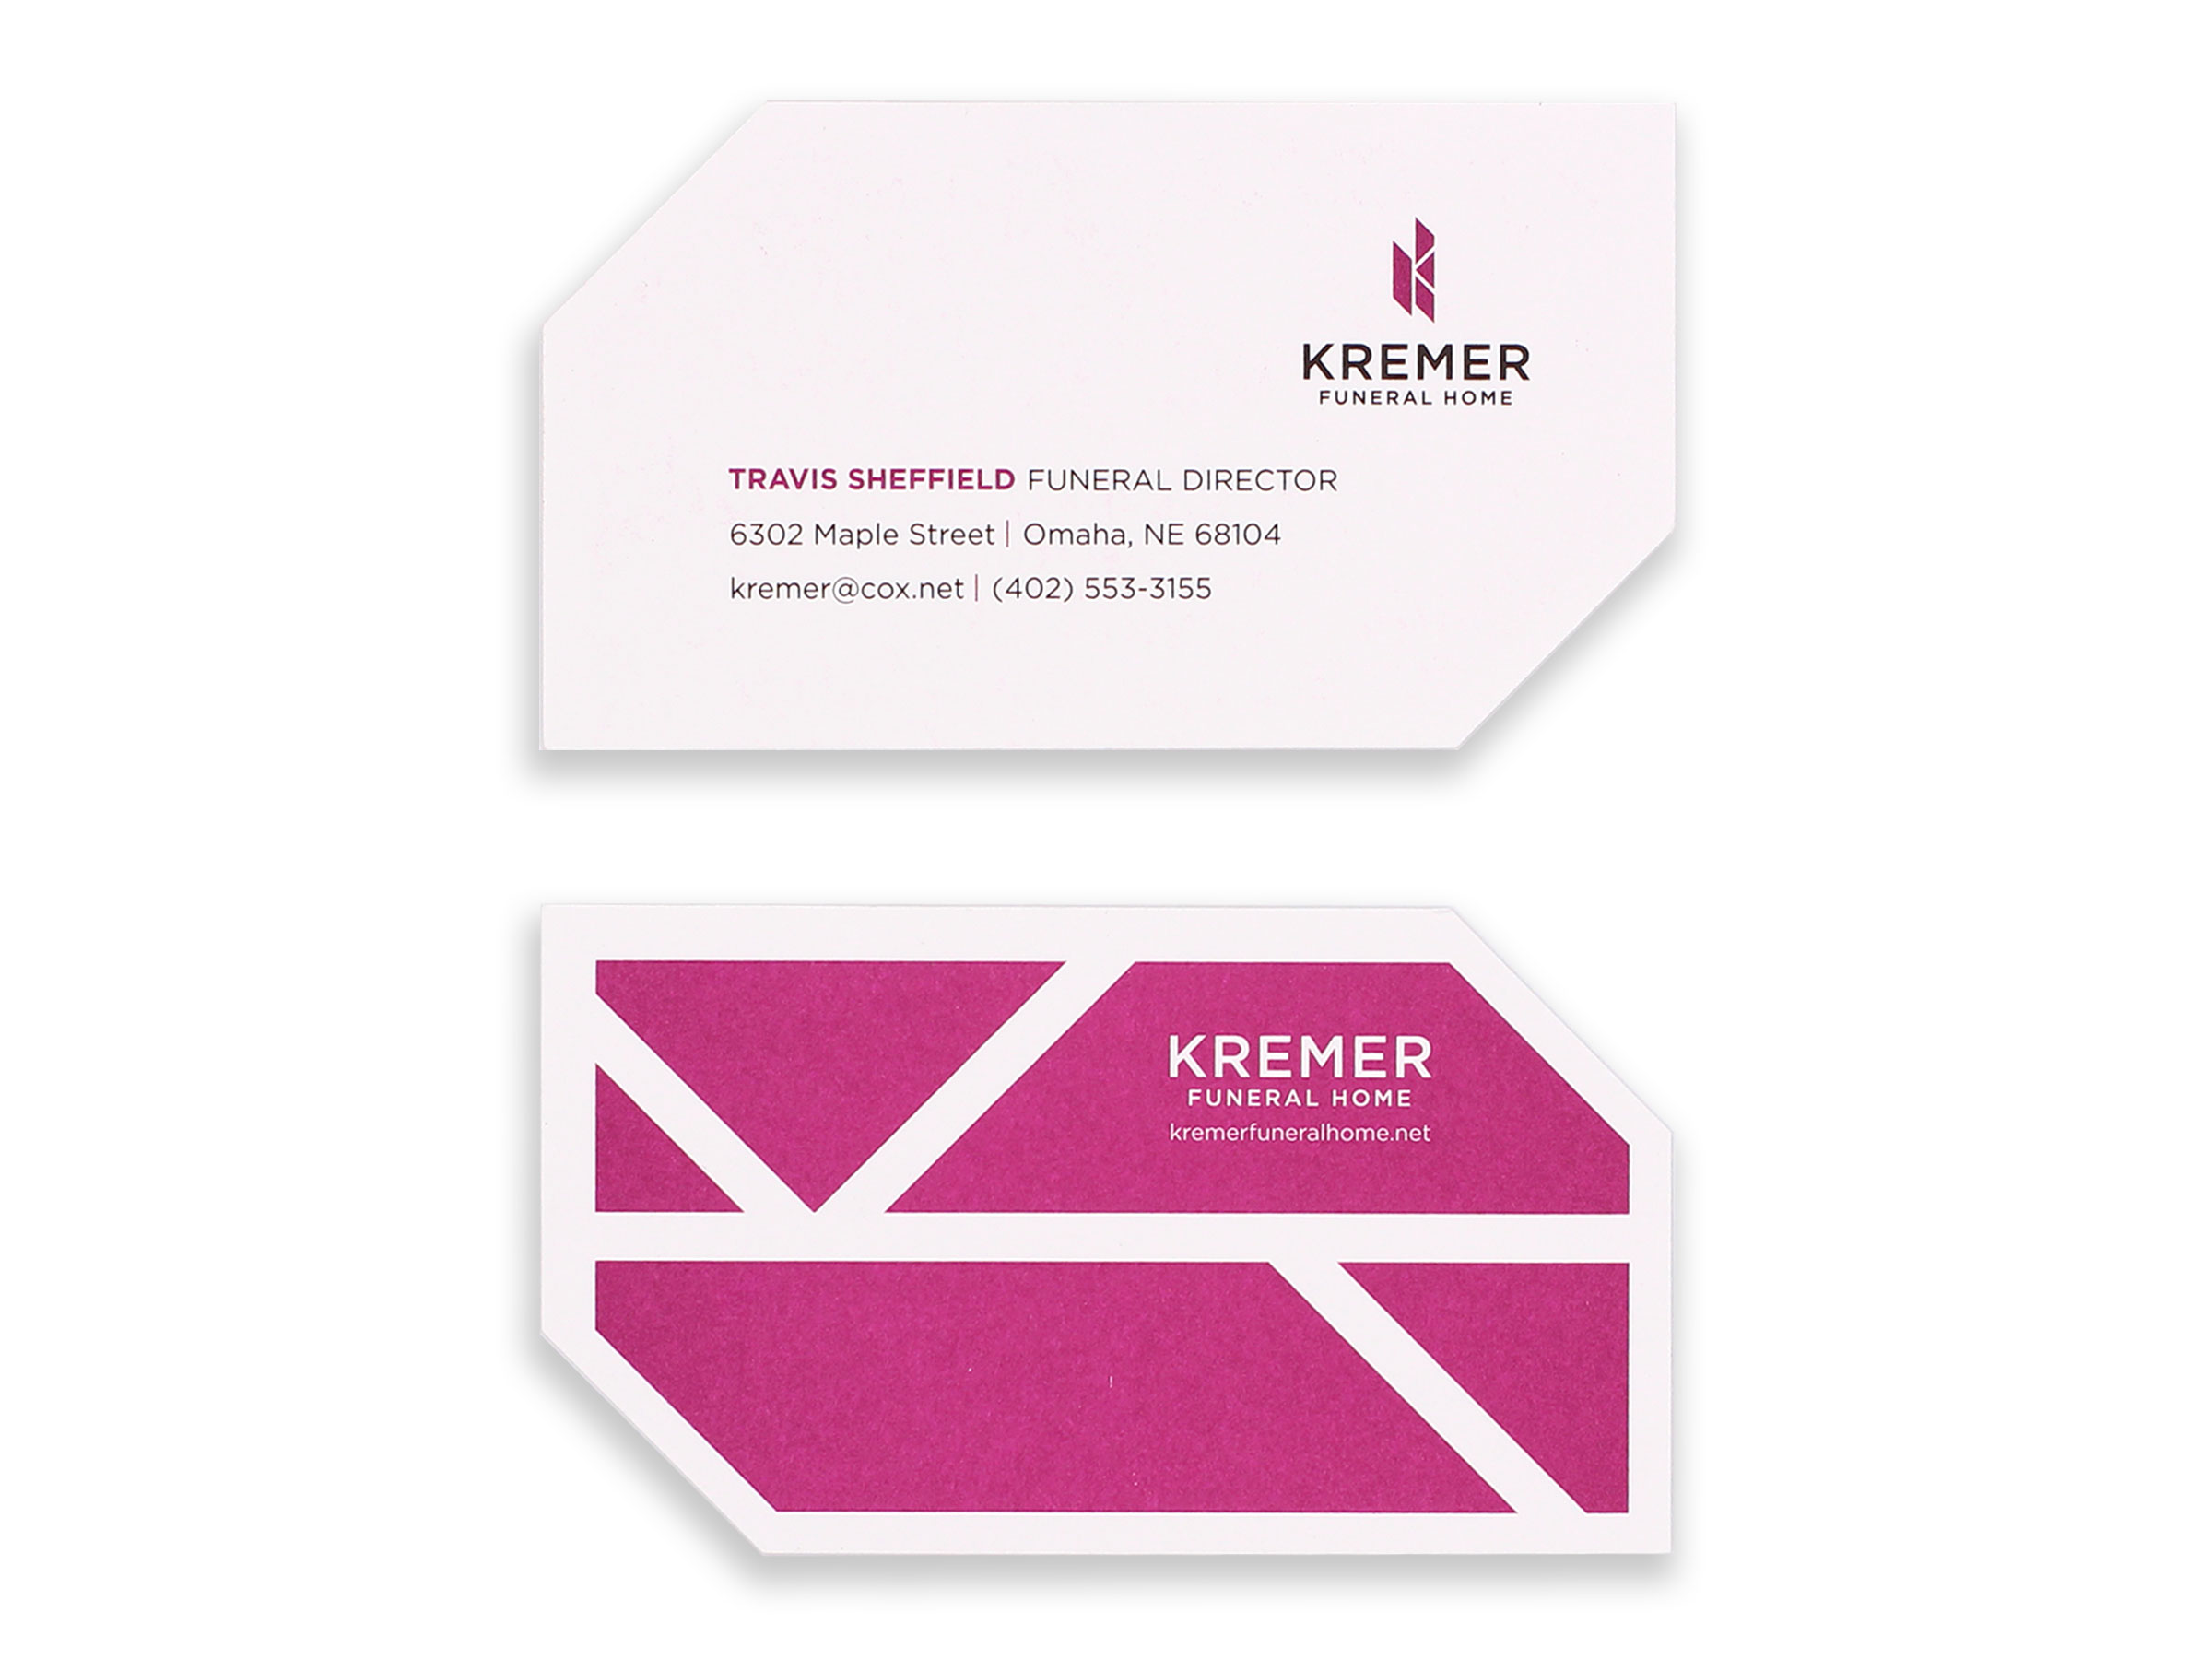 Kremer Funeral Home Business Cards